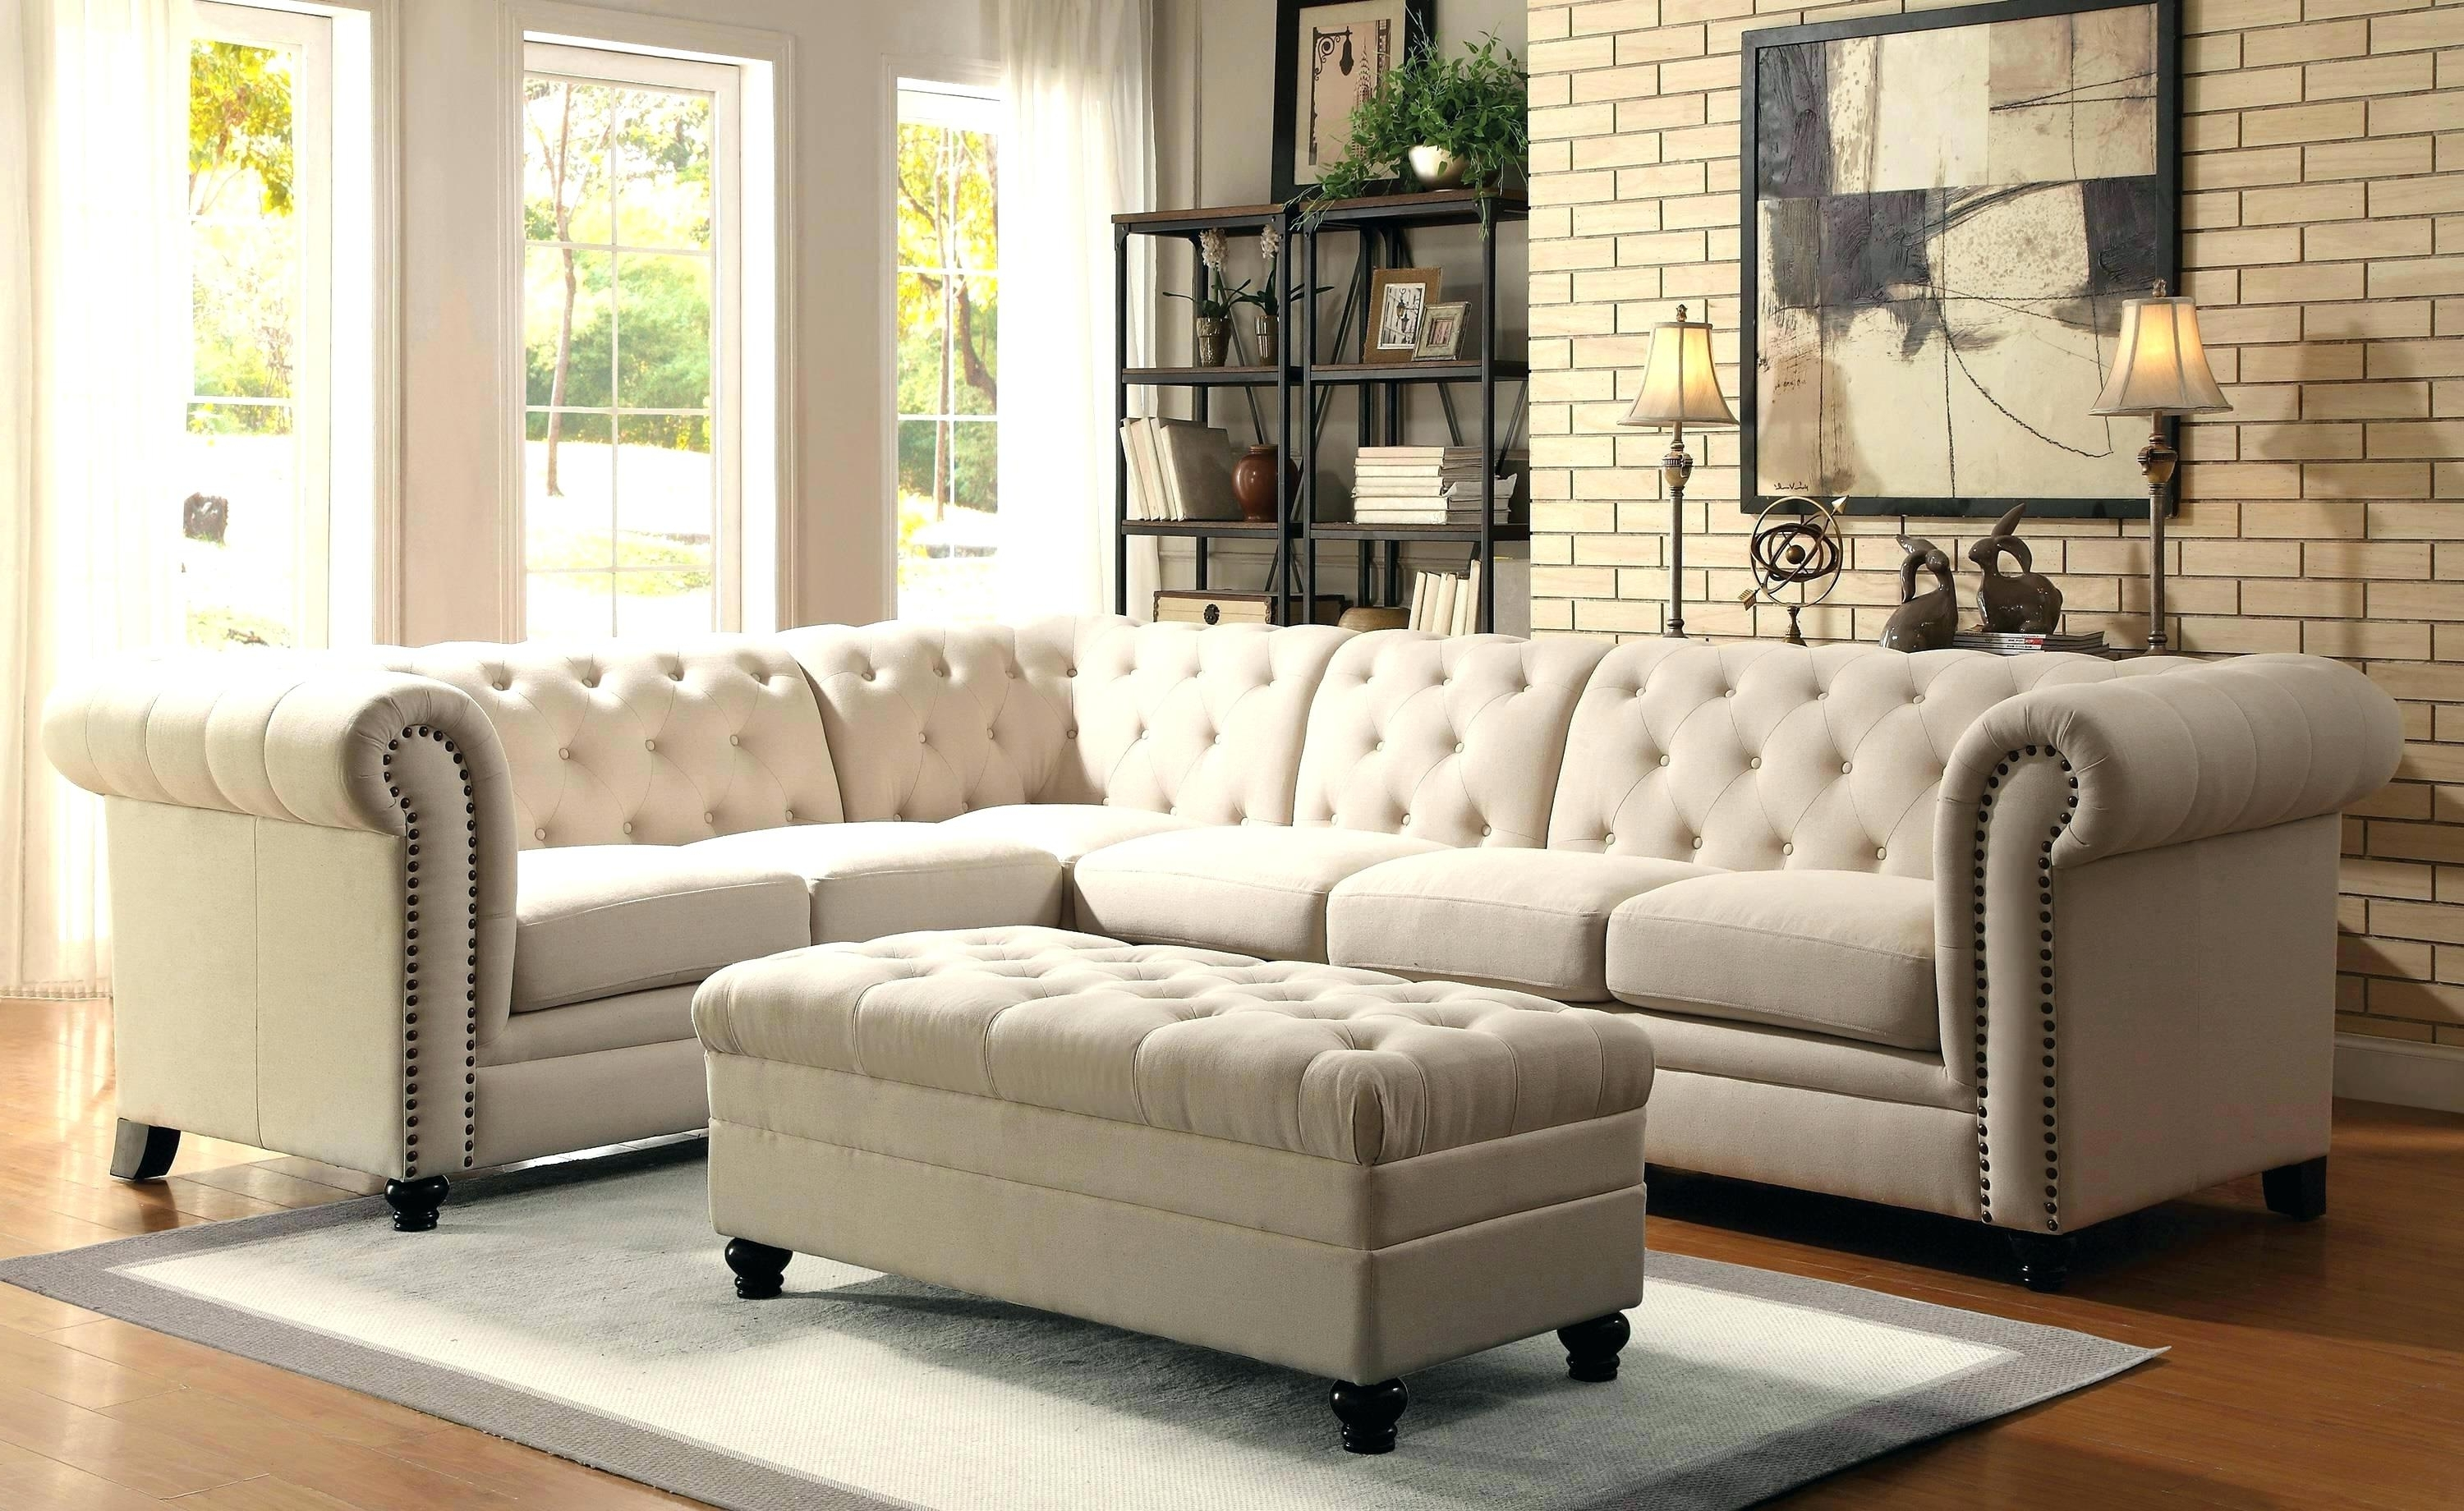 Fashionable Sectional Sofas Dallas Leather Sofa Tx Area – Province De Liege Throughout Dallas Sectional Sofas (View 7 of 20)